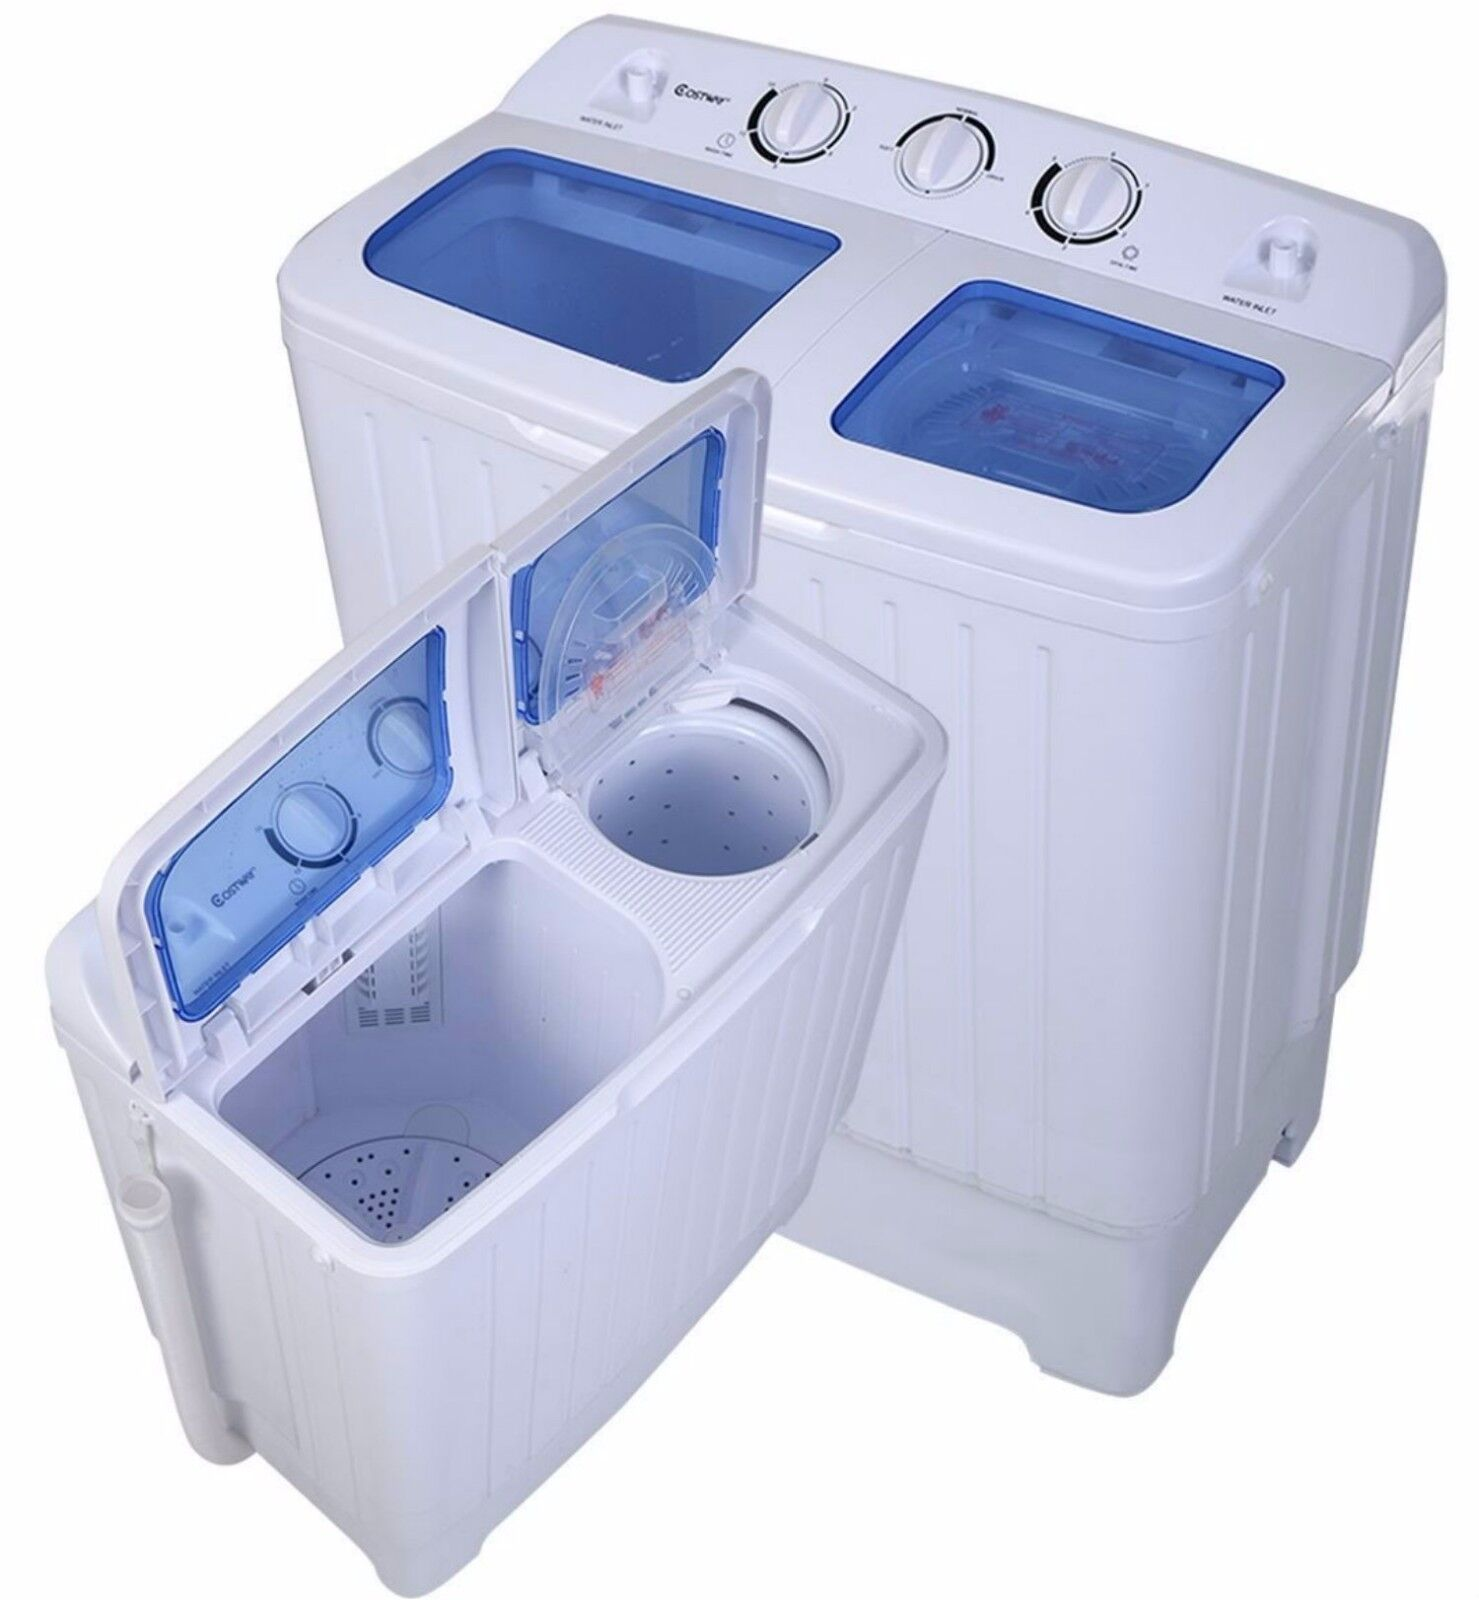 washer and dryer machine all in one